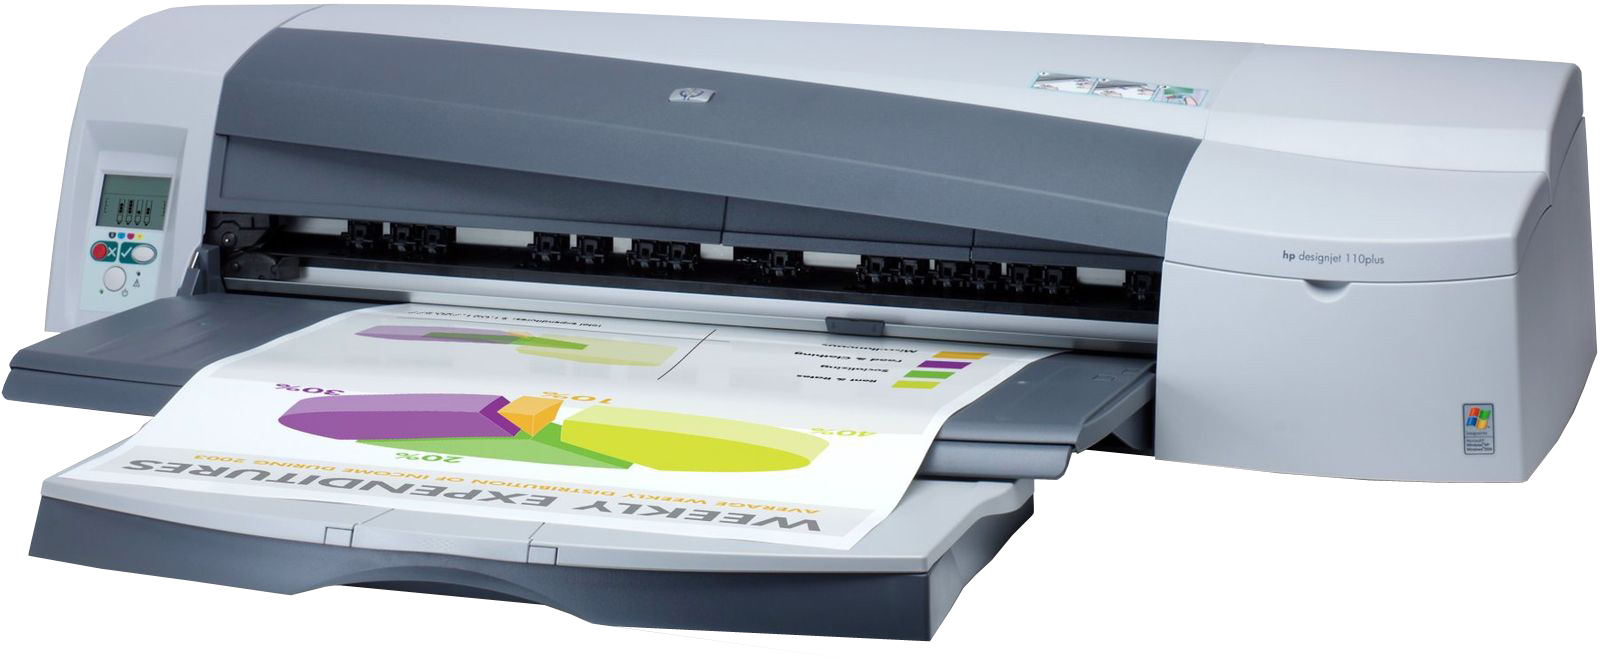 HP DesignJet 110r Plus